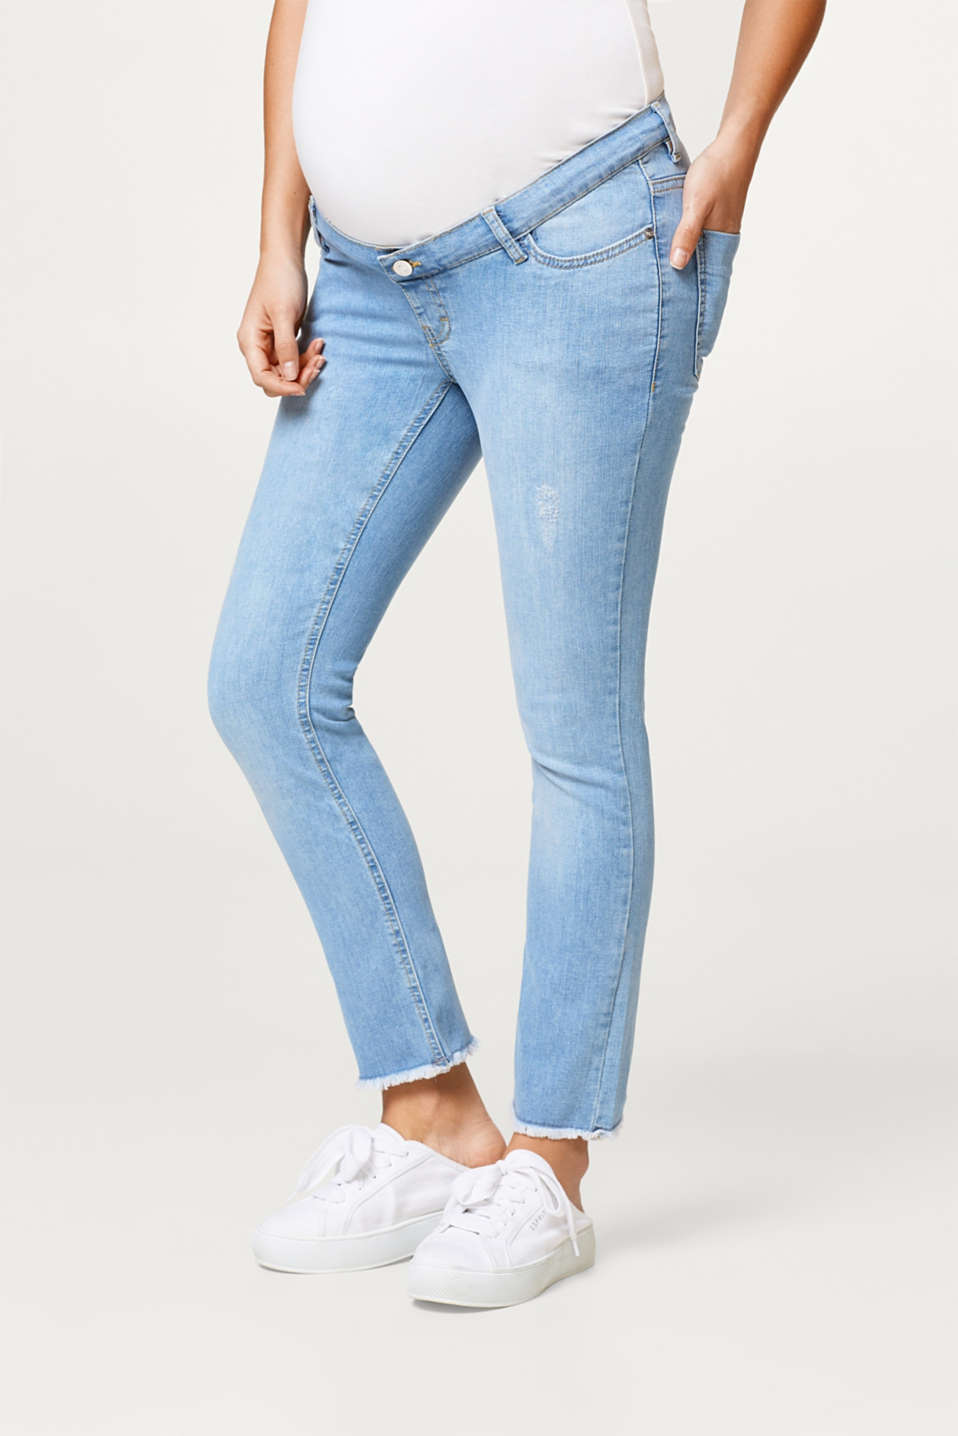 Esprit - Stretch jeans with a vintage finish and over-bump waistband